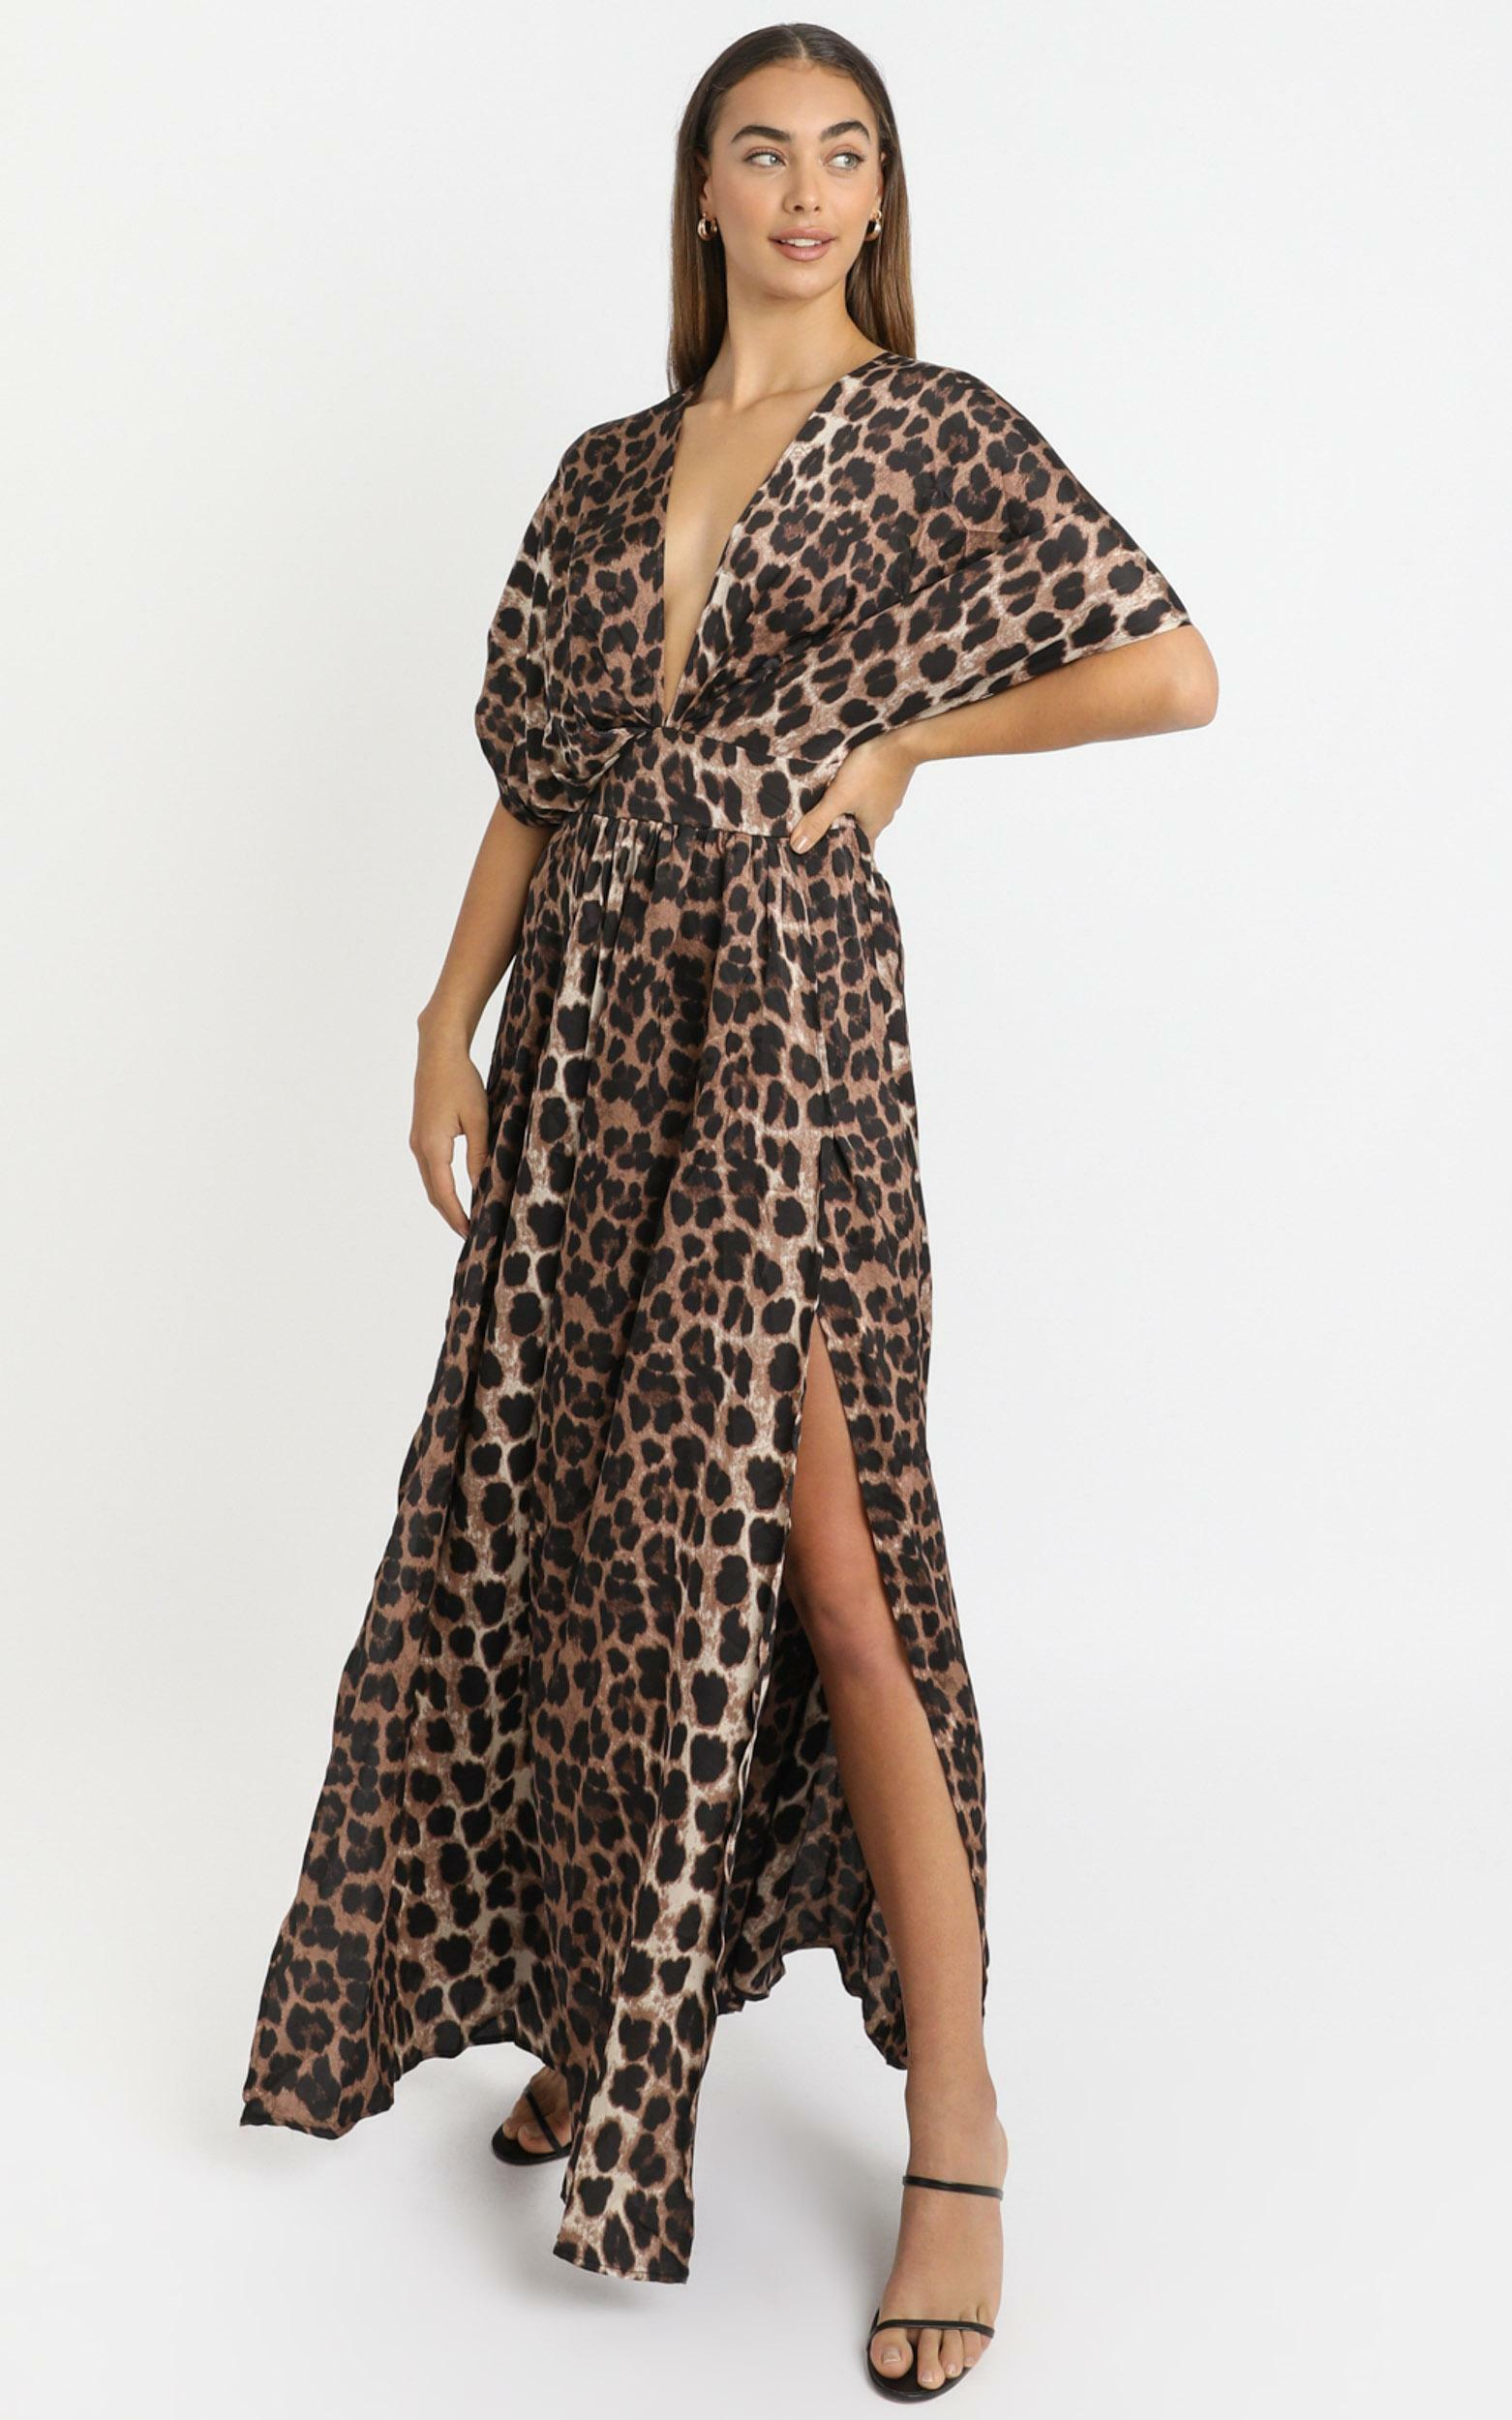 Vacay Ready Maxi Dress in leopard print - 20 (XXXXL), BRN1, hi-res image number null